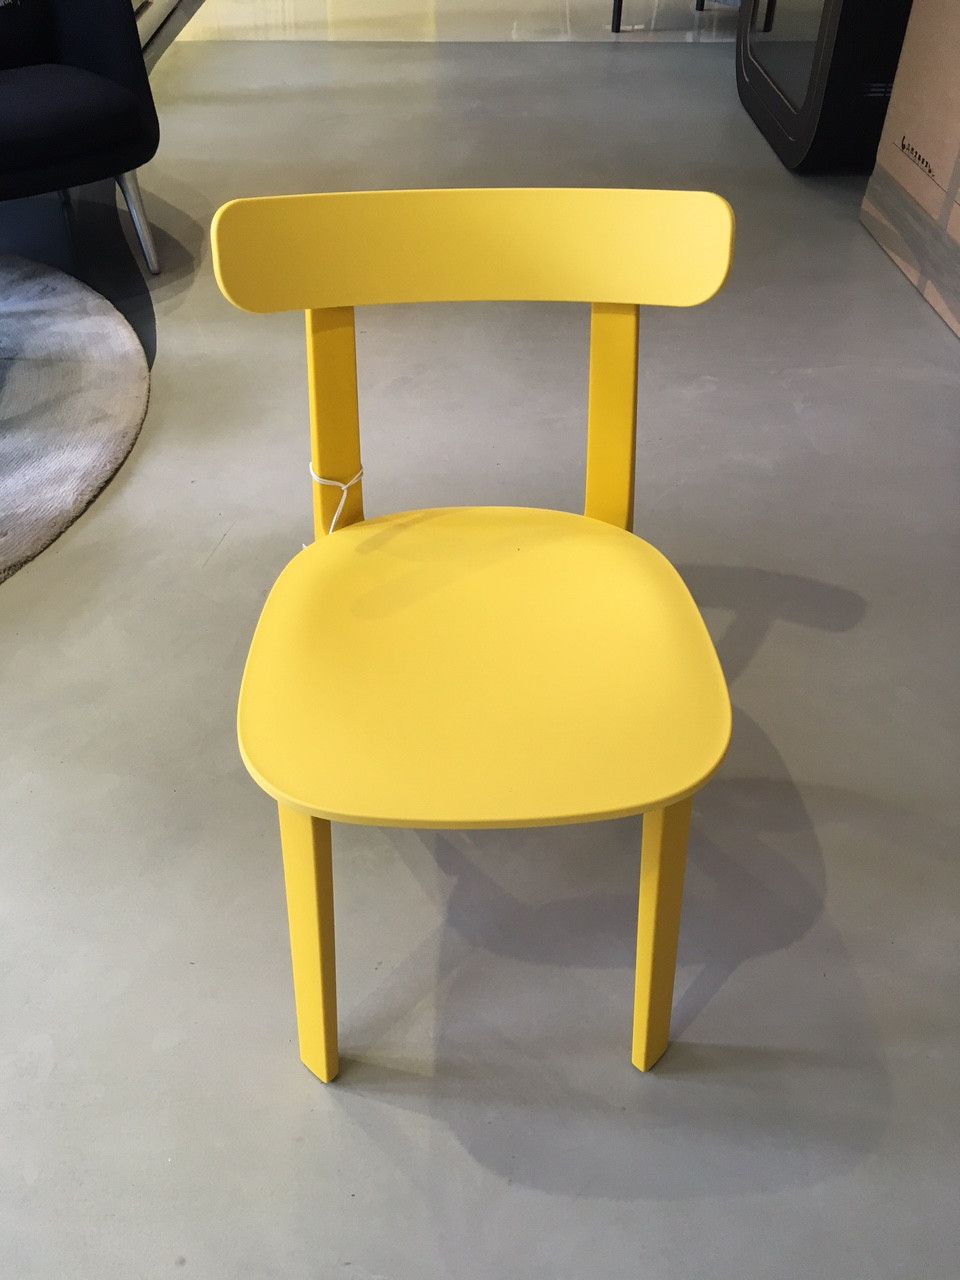 All Plastic Chair In Yellow   Home Decor, Midcentury And Contemporary  Furniture Design Inspiration  